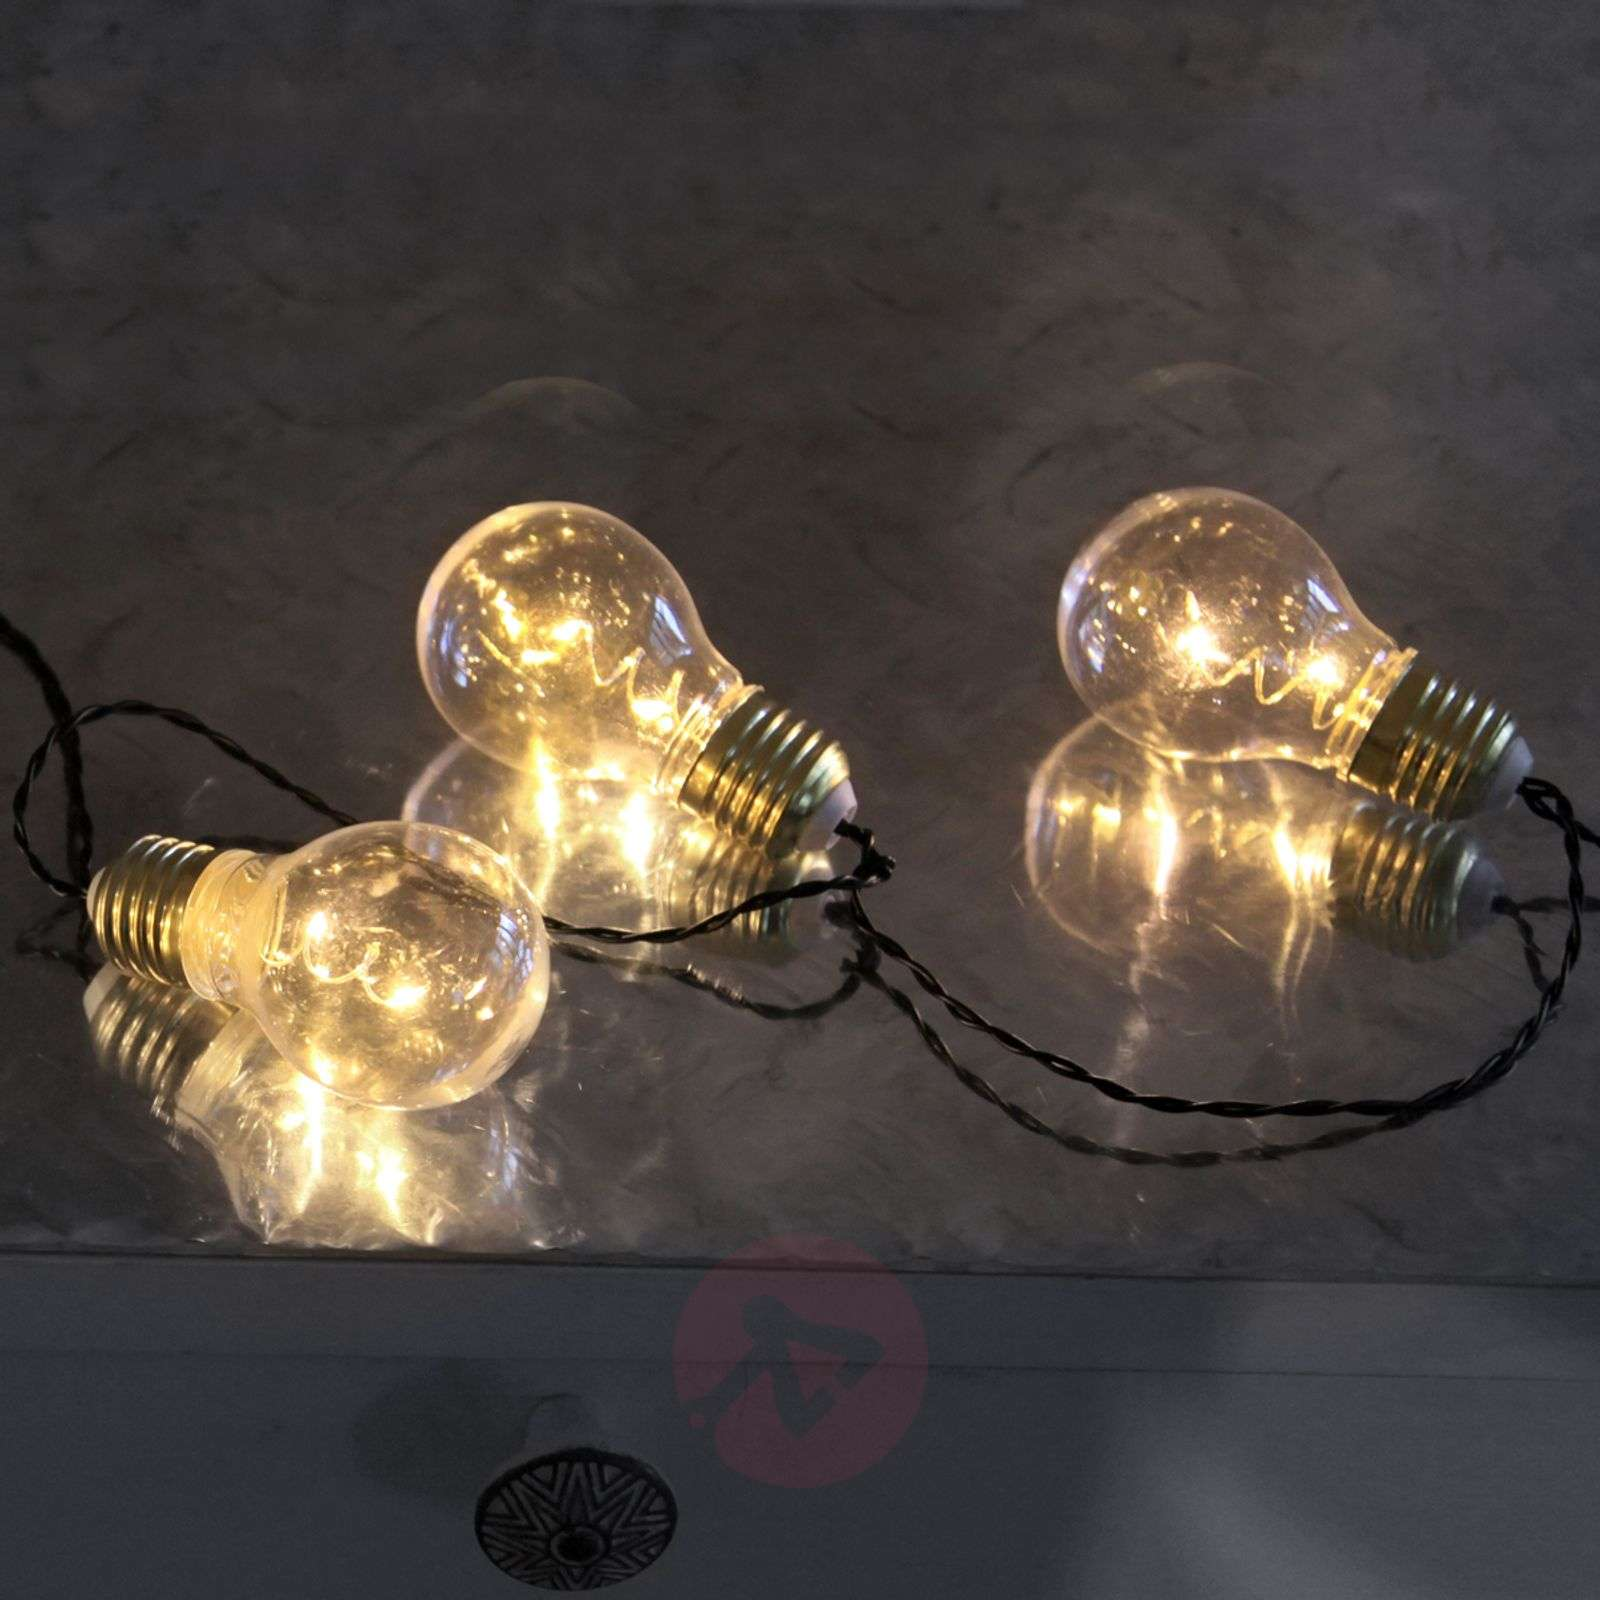 idea foot included bulbs ul product weatherproof lights string listed lighting watts led outdoor keymit